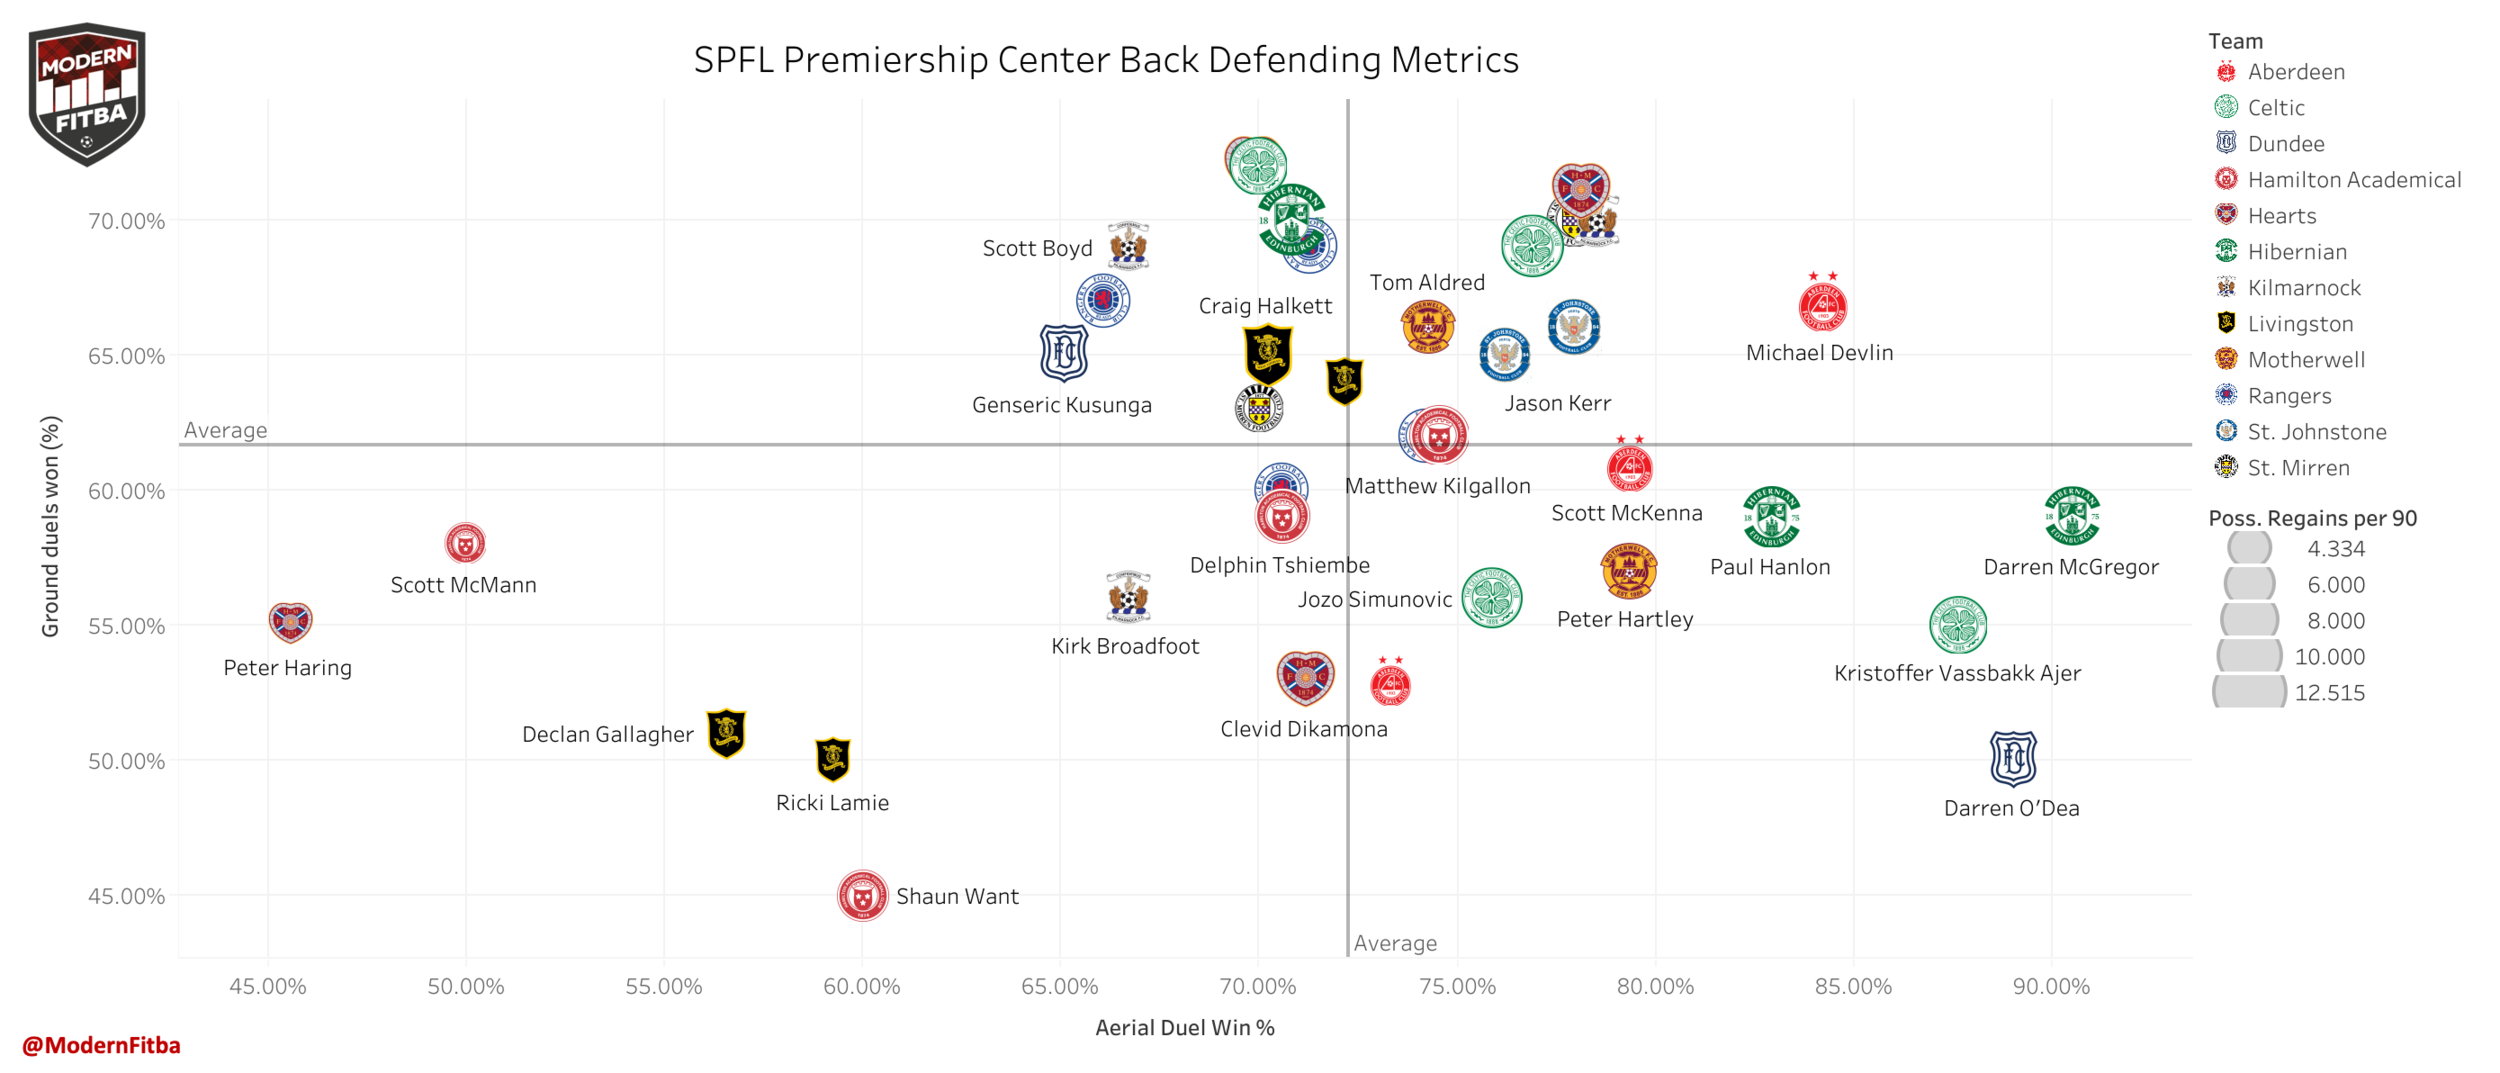 Defending Metrics for SPFL Premiership Center Backs. Showing the % of Aerial and Ground Duels won. Despite what she says, size matters here as the larger the plot is the higher the player's possession regains per 90 are.  Interactive version here .